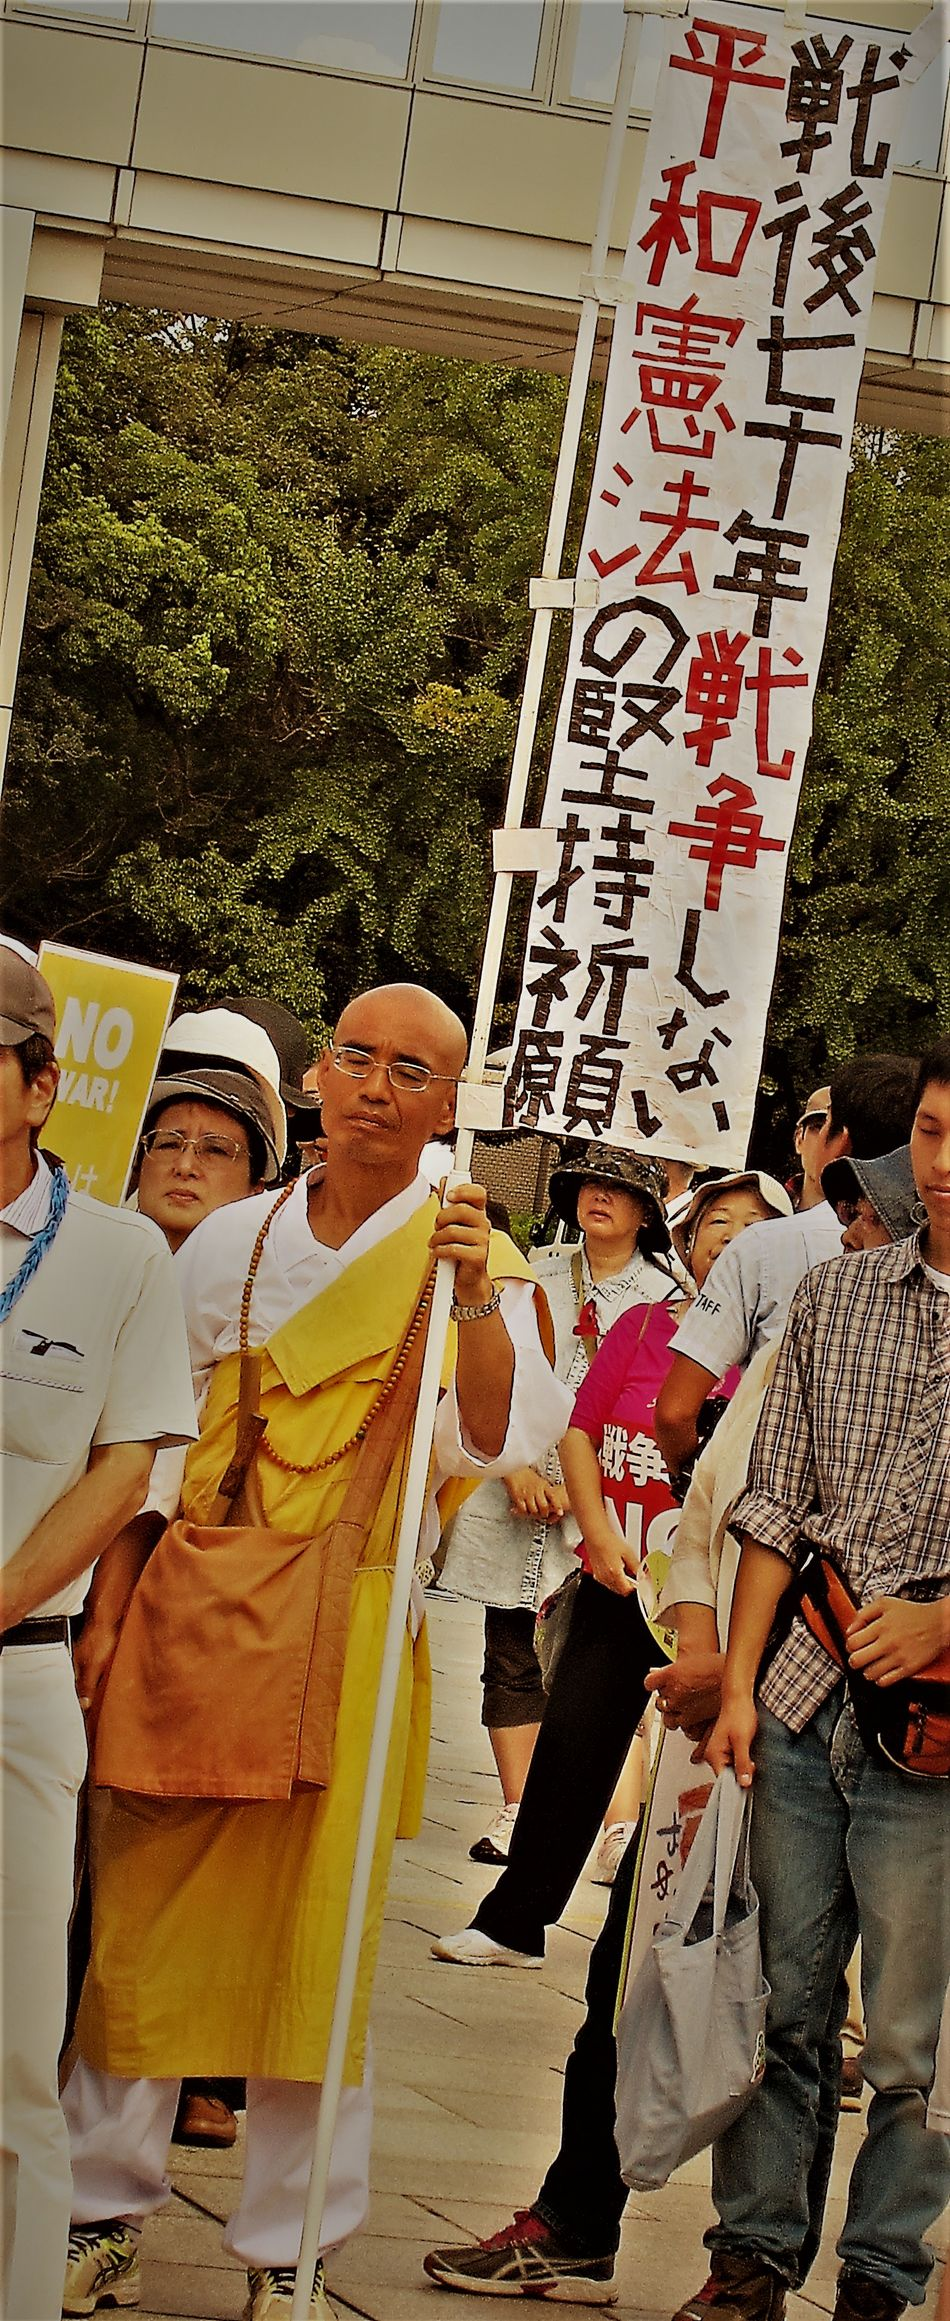 Anti Abe Protest Buddhist Monks City Communication Japan Large Group Of People March Monk  Outdoors People Politics Protest Protest March Protest Posters Protest Rally Protest Signs Protesters Protesting Real People Resist Resistance  Sign Signboard Standing Text